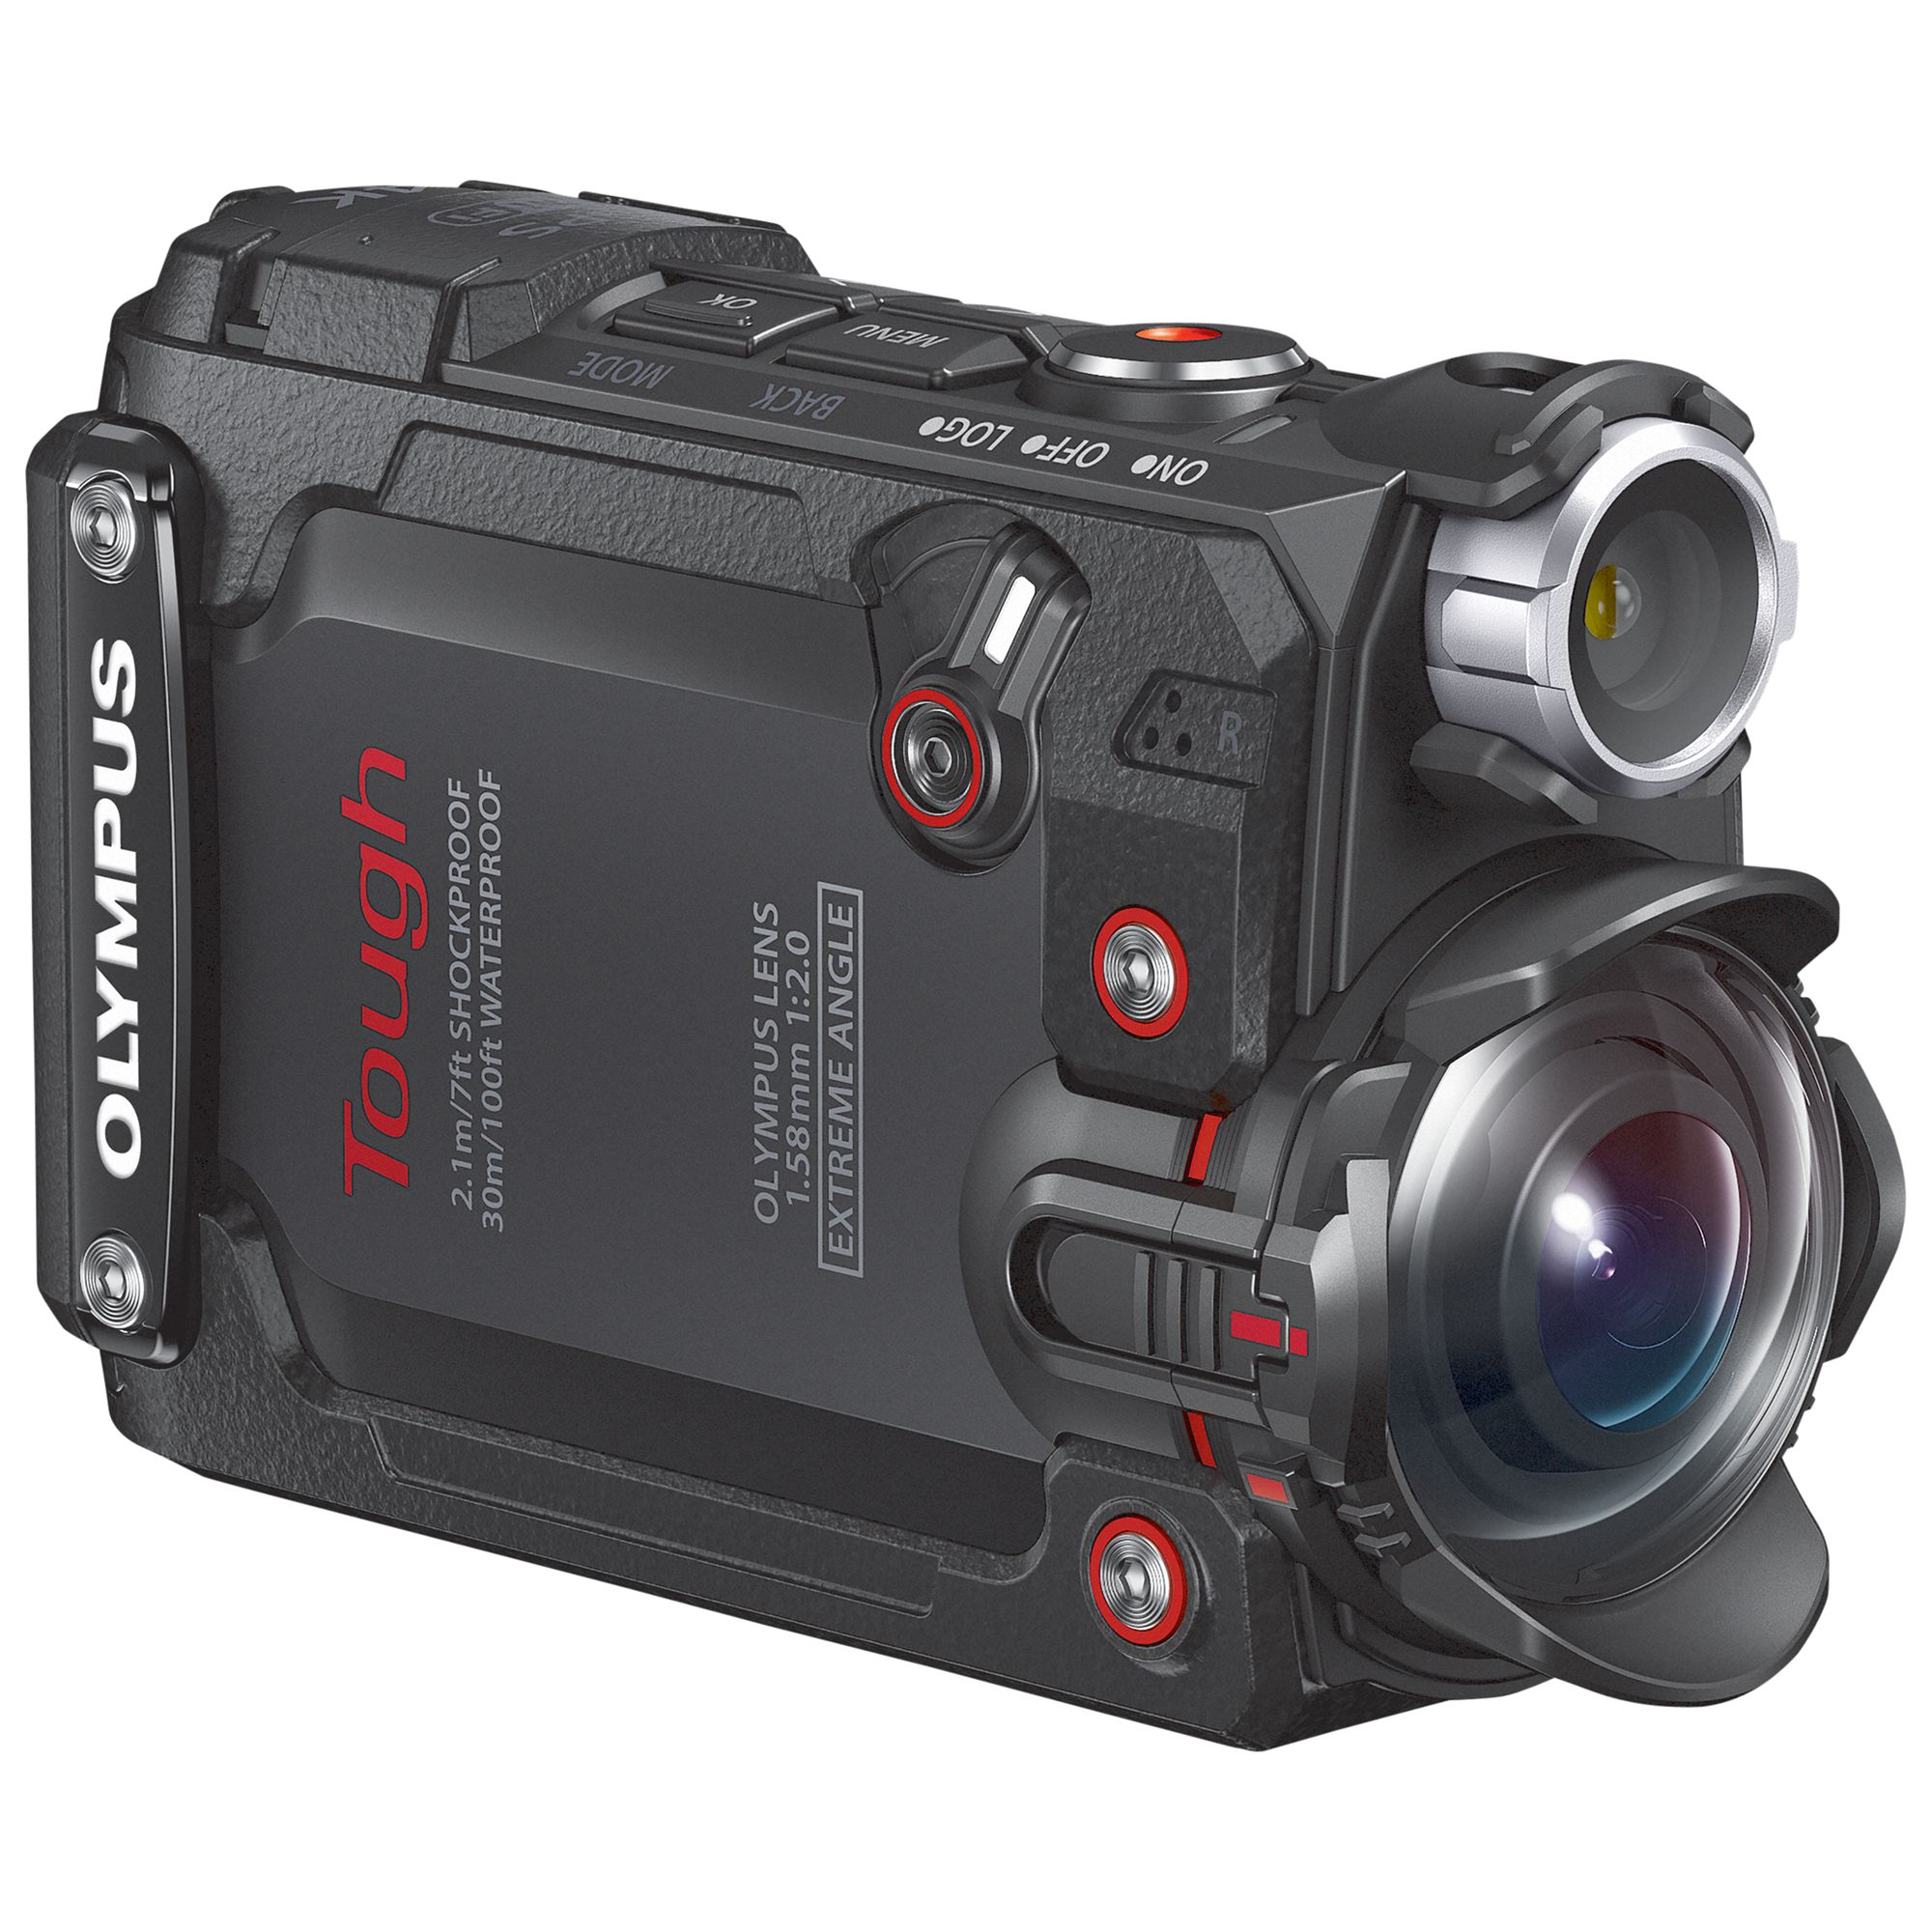 Olympus Olympus Tough TG-Tracker Waterproof Action Camera, 4K Ultra HD, 7.2MP, Ultra-Wide Angle Fixed Lens, Wi-Fi With 1.5 Flip Monitor, Black